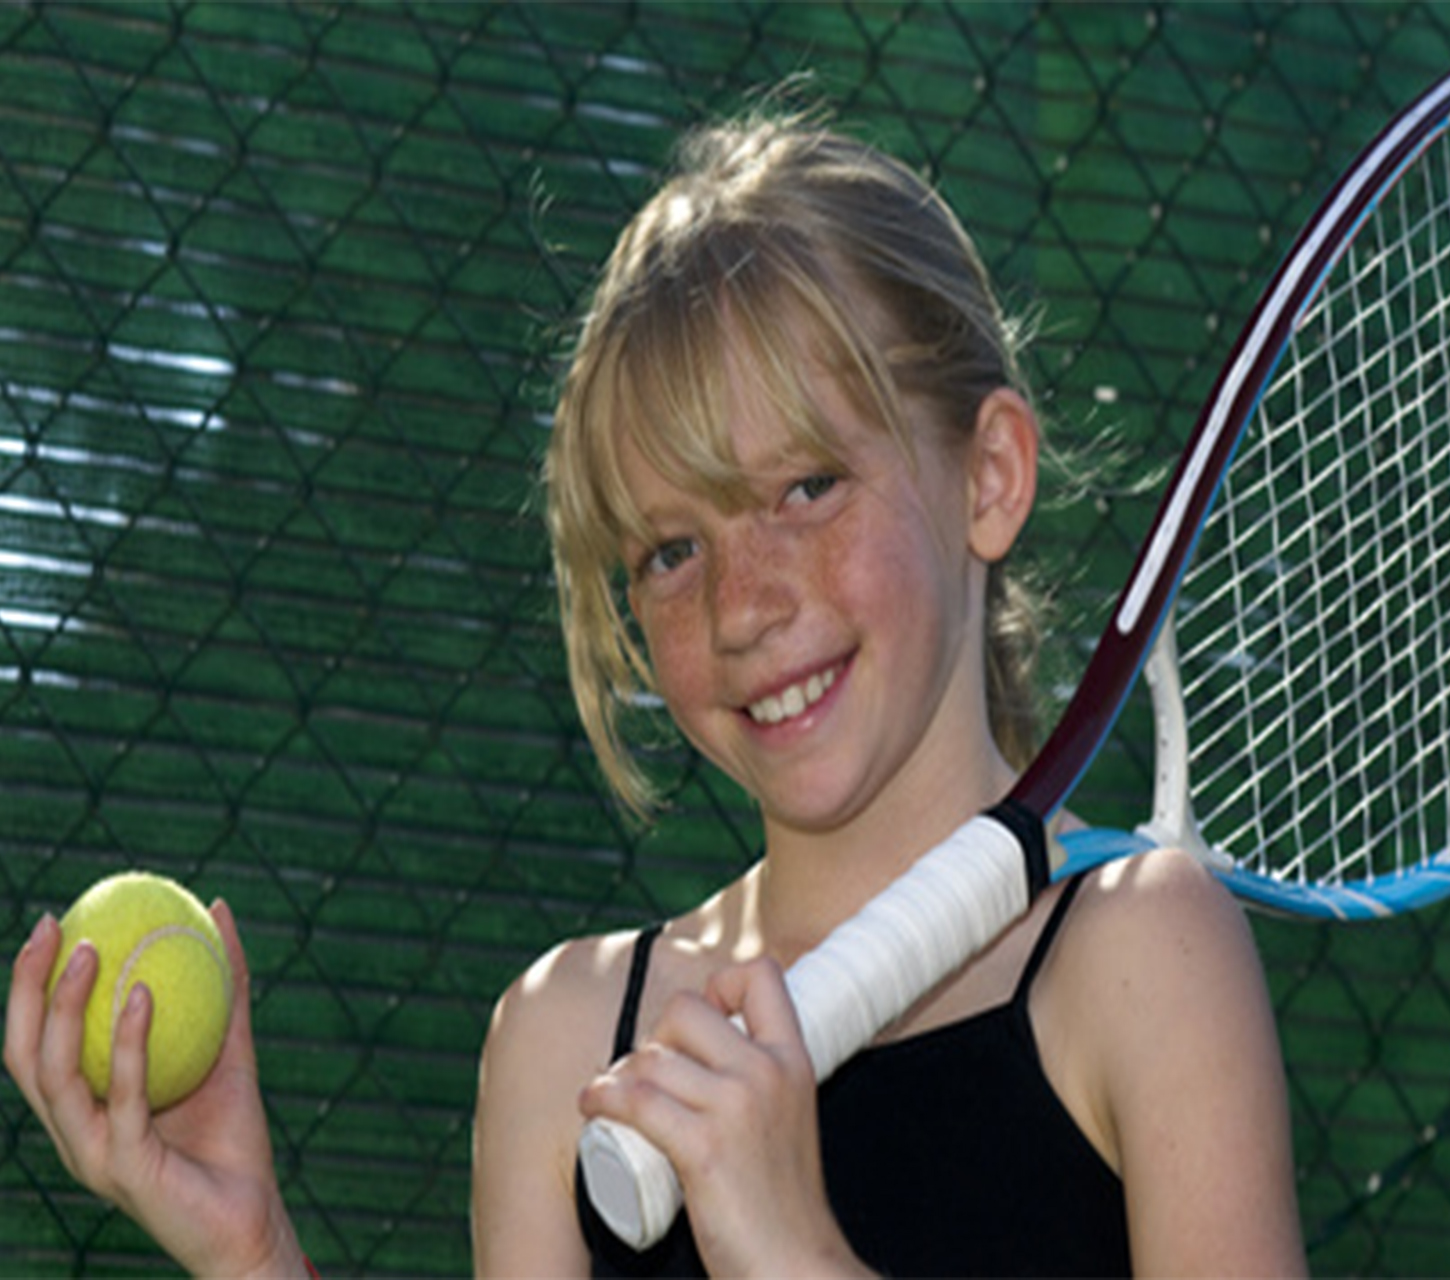 young girl with tennis racket and ball